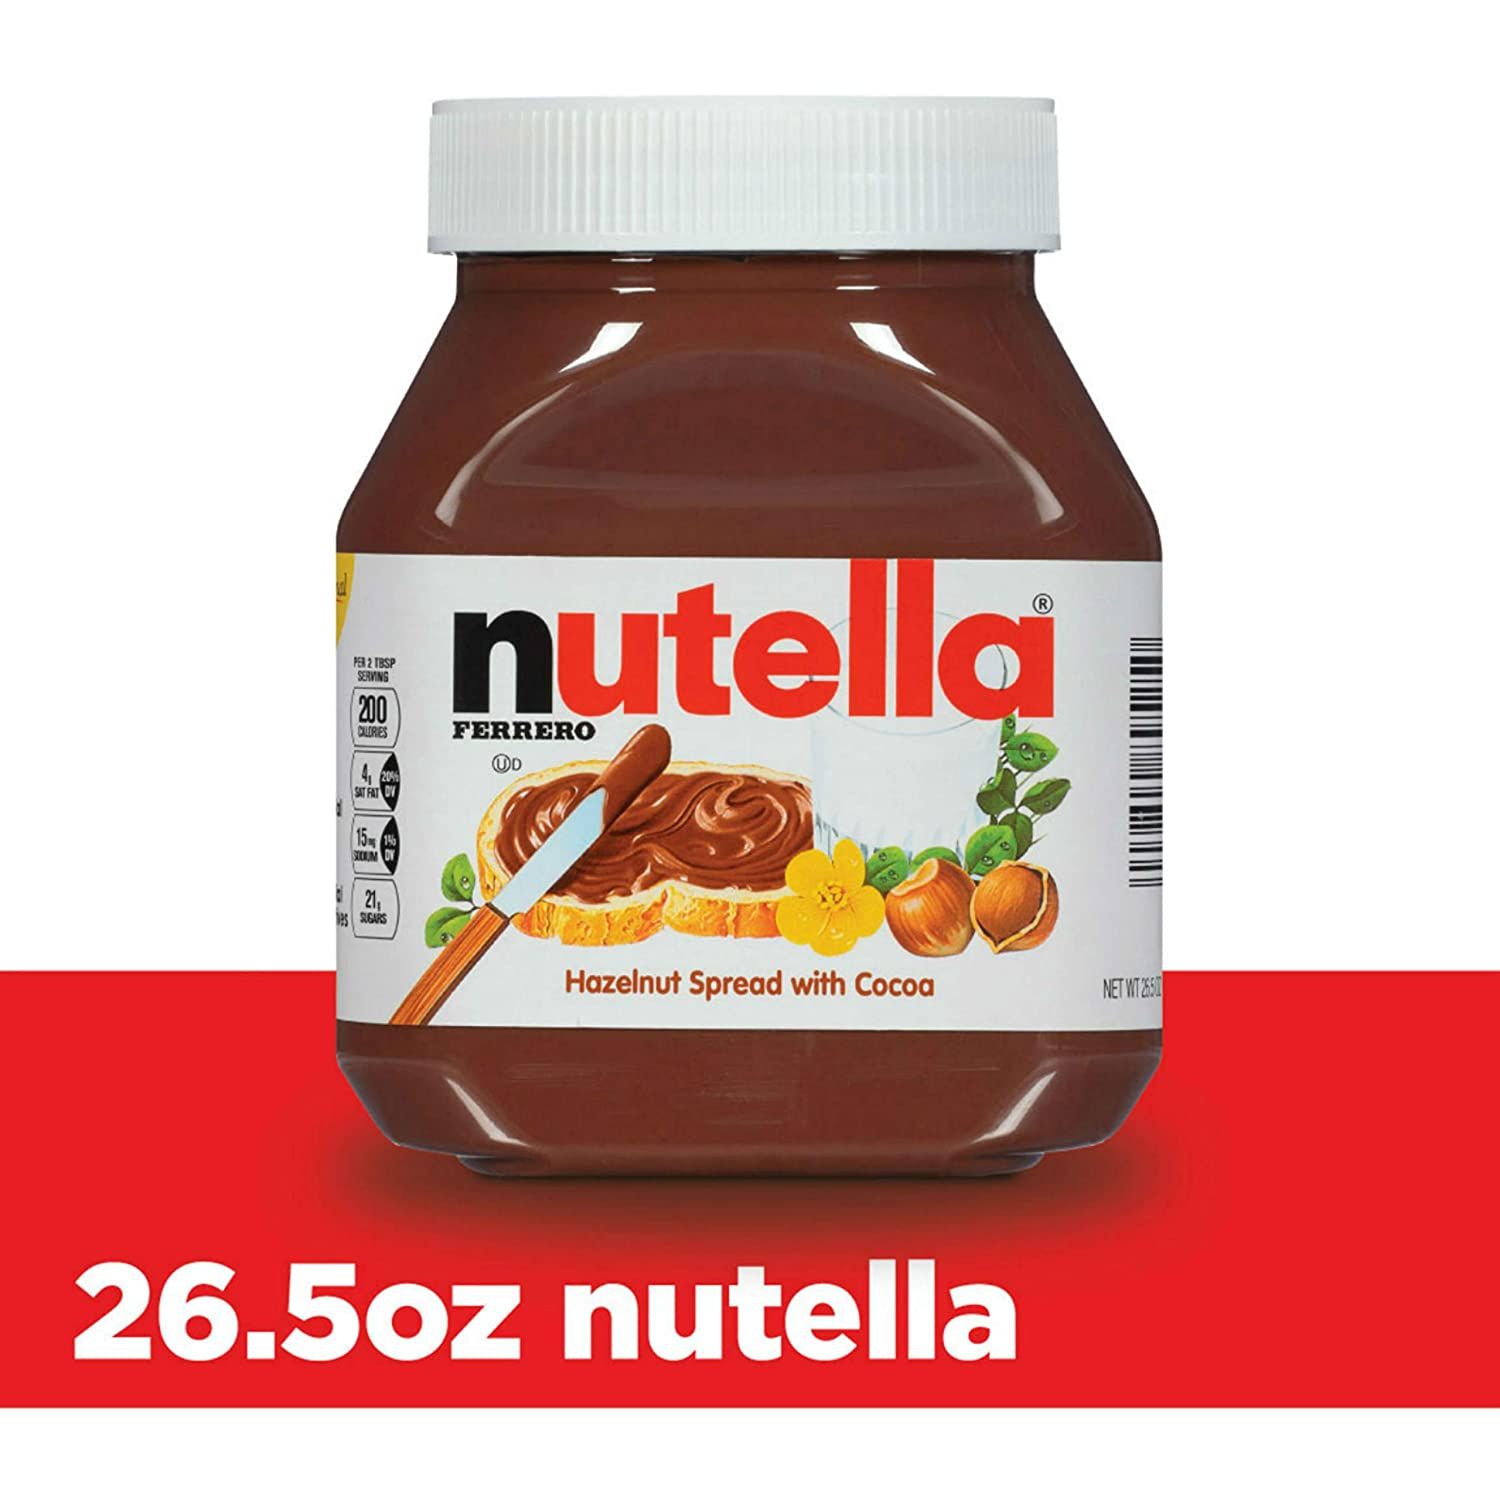 Nutella Chocolate Hazelnut Spread, Perfect Topping for Pancakes, 26.5 Ounce (Pack of 1) 71sVS02Bau2L